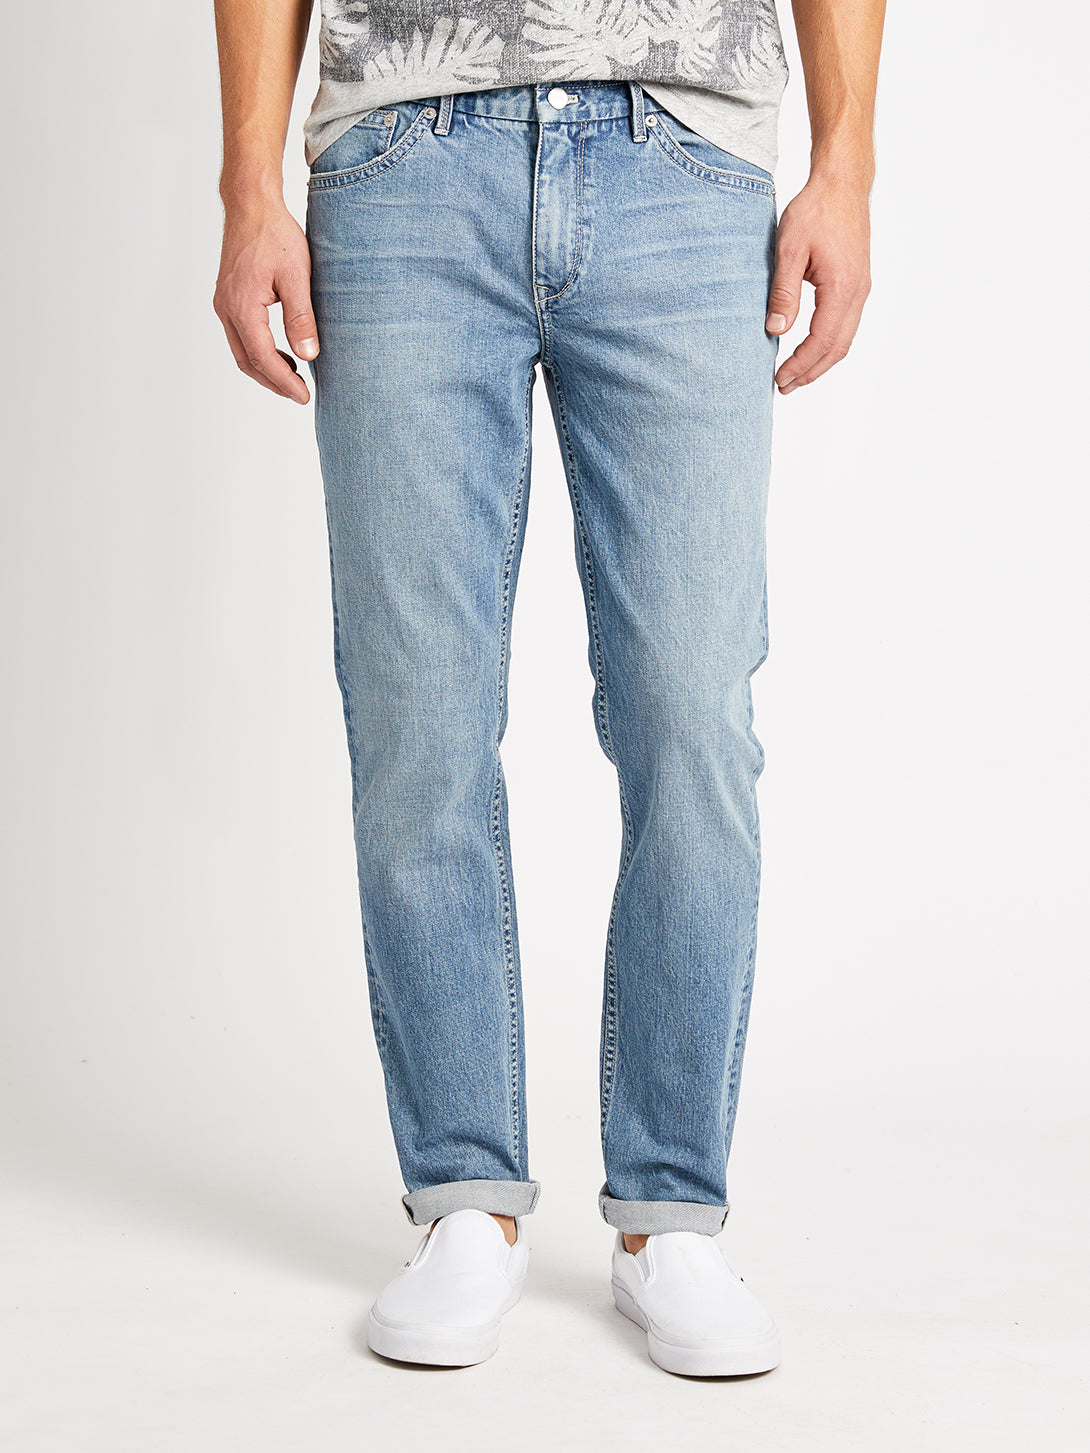 INDIGO DENIM RIVINGTONS LIGHT WASH DANIM